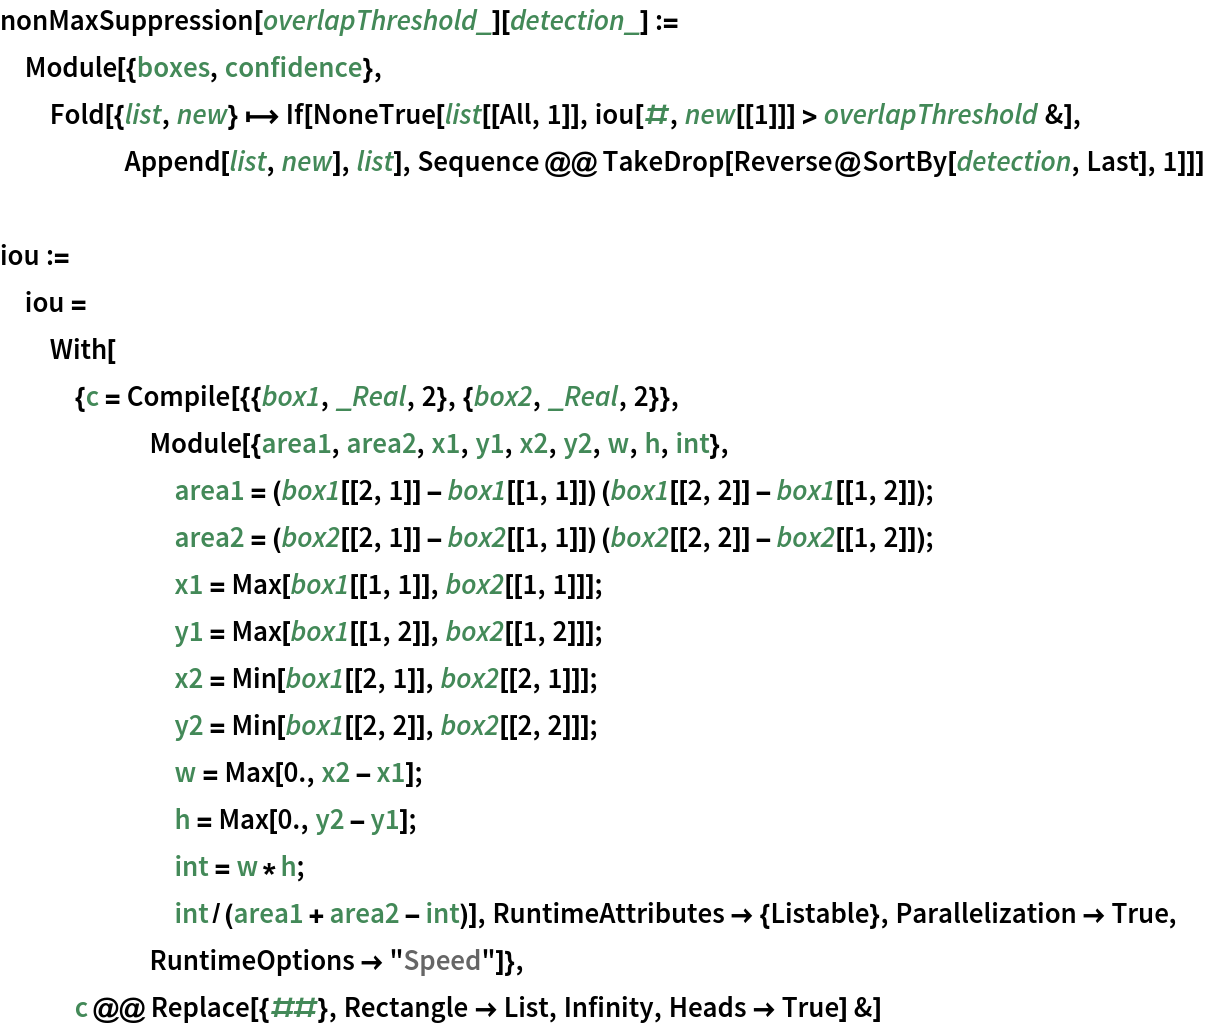 """nonMaxSuppression[overlapThreshold_][detection_] := Module[{boxes, confidence}, Fold[{list, new}  -> If[NoneTrue[list[[All, 1]], iou[#, new[[1]]] > overlapThreshold &], Append[list, new], list], Sequence @@ TakeDrop[Reverse@SortBy[detection, Last], 1]]]  iou := iou = With[{c = Compile[{{box1, _Real, 2}, {box2, _Real, 2}}, Module[{area1, area2, x1, y1, x2, y2, w, h, int}, area1 = (box1[[2, 1]] - box1[[1, 1]]) (box1[[2, 2]] - box1[[1, 2]]);        area2 = (box2[[2, 1]] - box2[[1, 1]]) (box2[[2, 2]] - box2[[1, 2]]);        x1 = Max[box1[[1, 1]], box2[[1, 1]]];        y1 = Max[box1[[1, 2]], box2[[1, 2]]];        x2 = Min[box1[[2, 1]], box2[[2, 1]]];        y2 = Min[box1[[2, 2]], box2[[2, 2]]];        w = Max[0., x2 - x1];        h = Max[0., y2 - y1];        int = w*h;        int/(area1 + area2 - int)], RuntimeAttributes -> {Listable}, Parallelization -> True, RuntimeOptions -> """"Speed""""]}, c @@ Replace[{##}, Rectangle -> List, Infinity, Heads -> True] &]"""